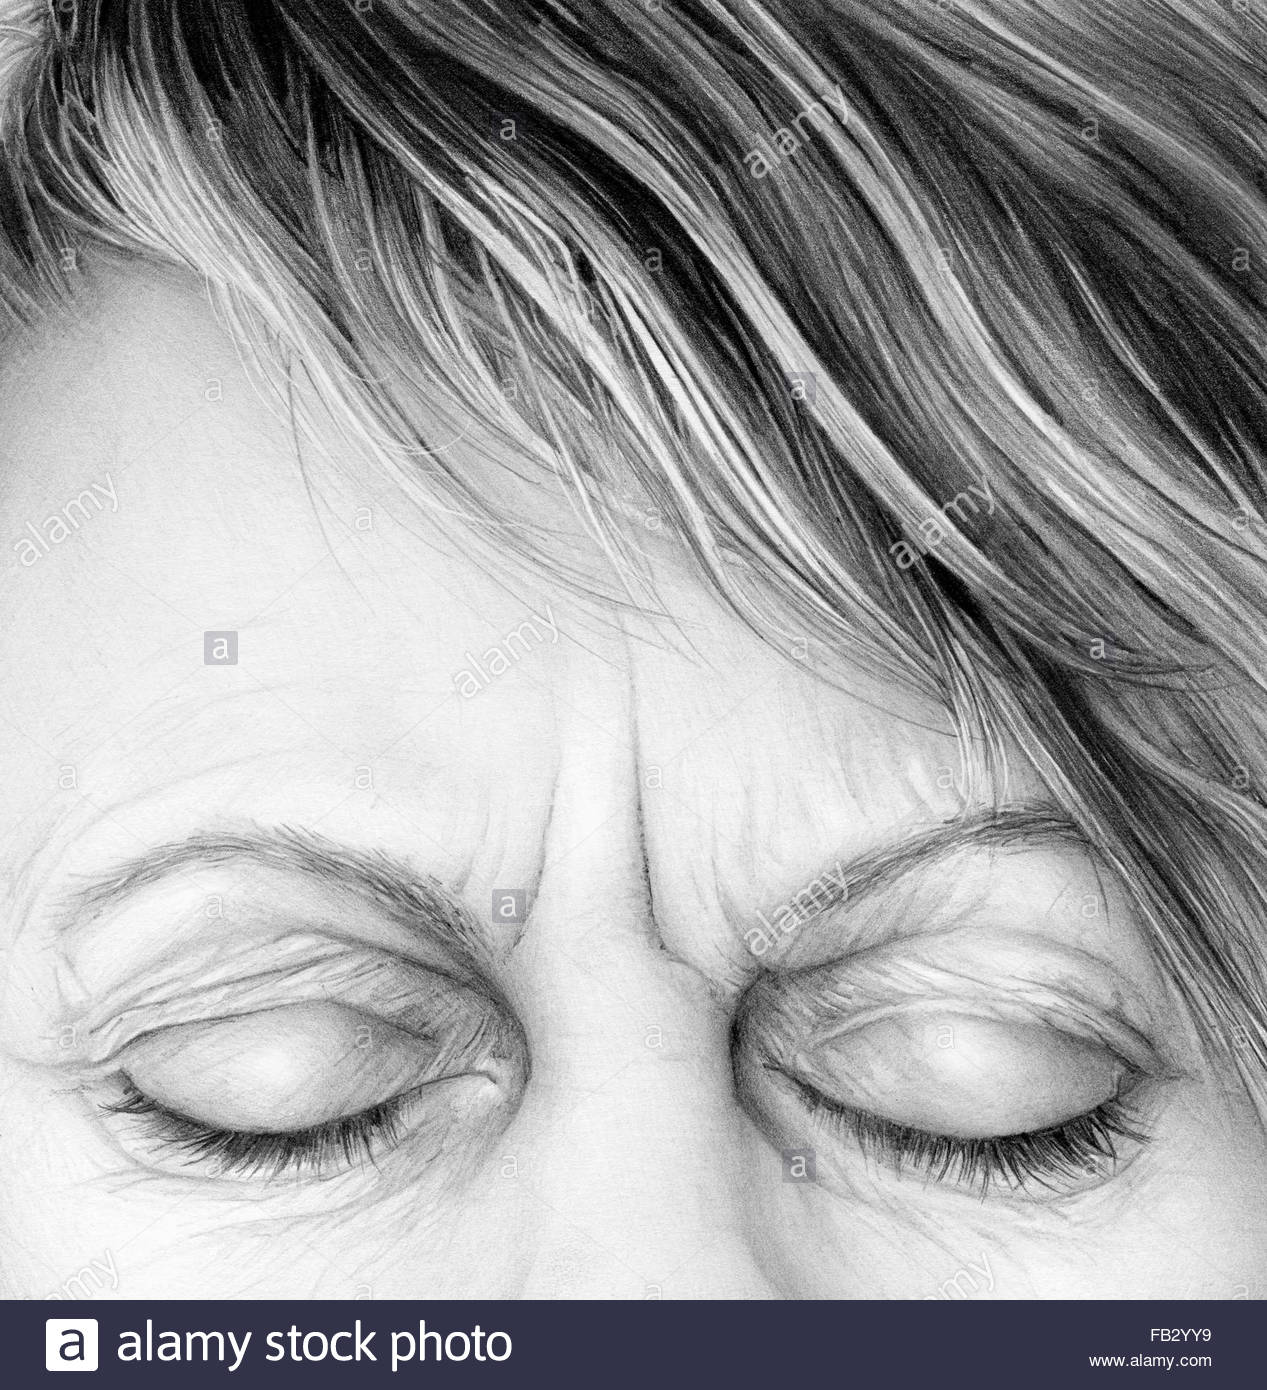 Close Up Of Pencil Drawing Of Woman Frowning With Eyes Closed Stock